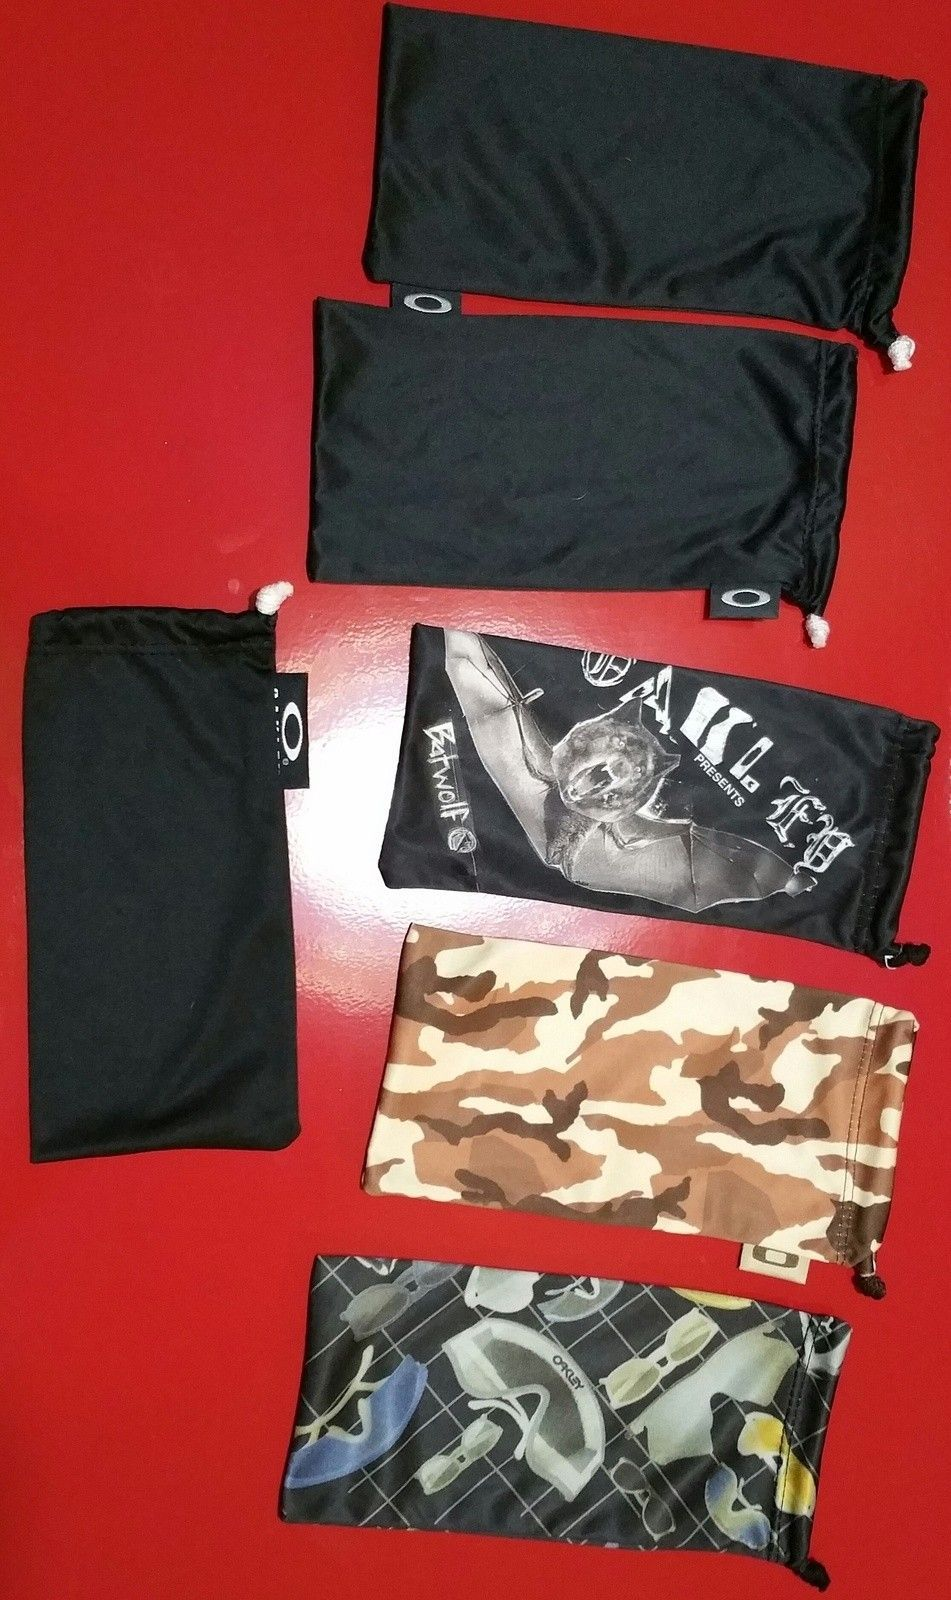 - SOLD! -Micro Bag Lot ... (Ducati, USA, S. White, Batwolf, KVD, ...) - 20150725_165634-01.jpeg